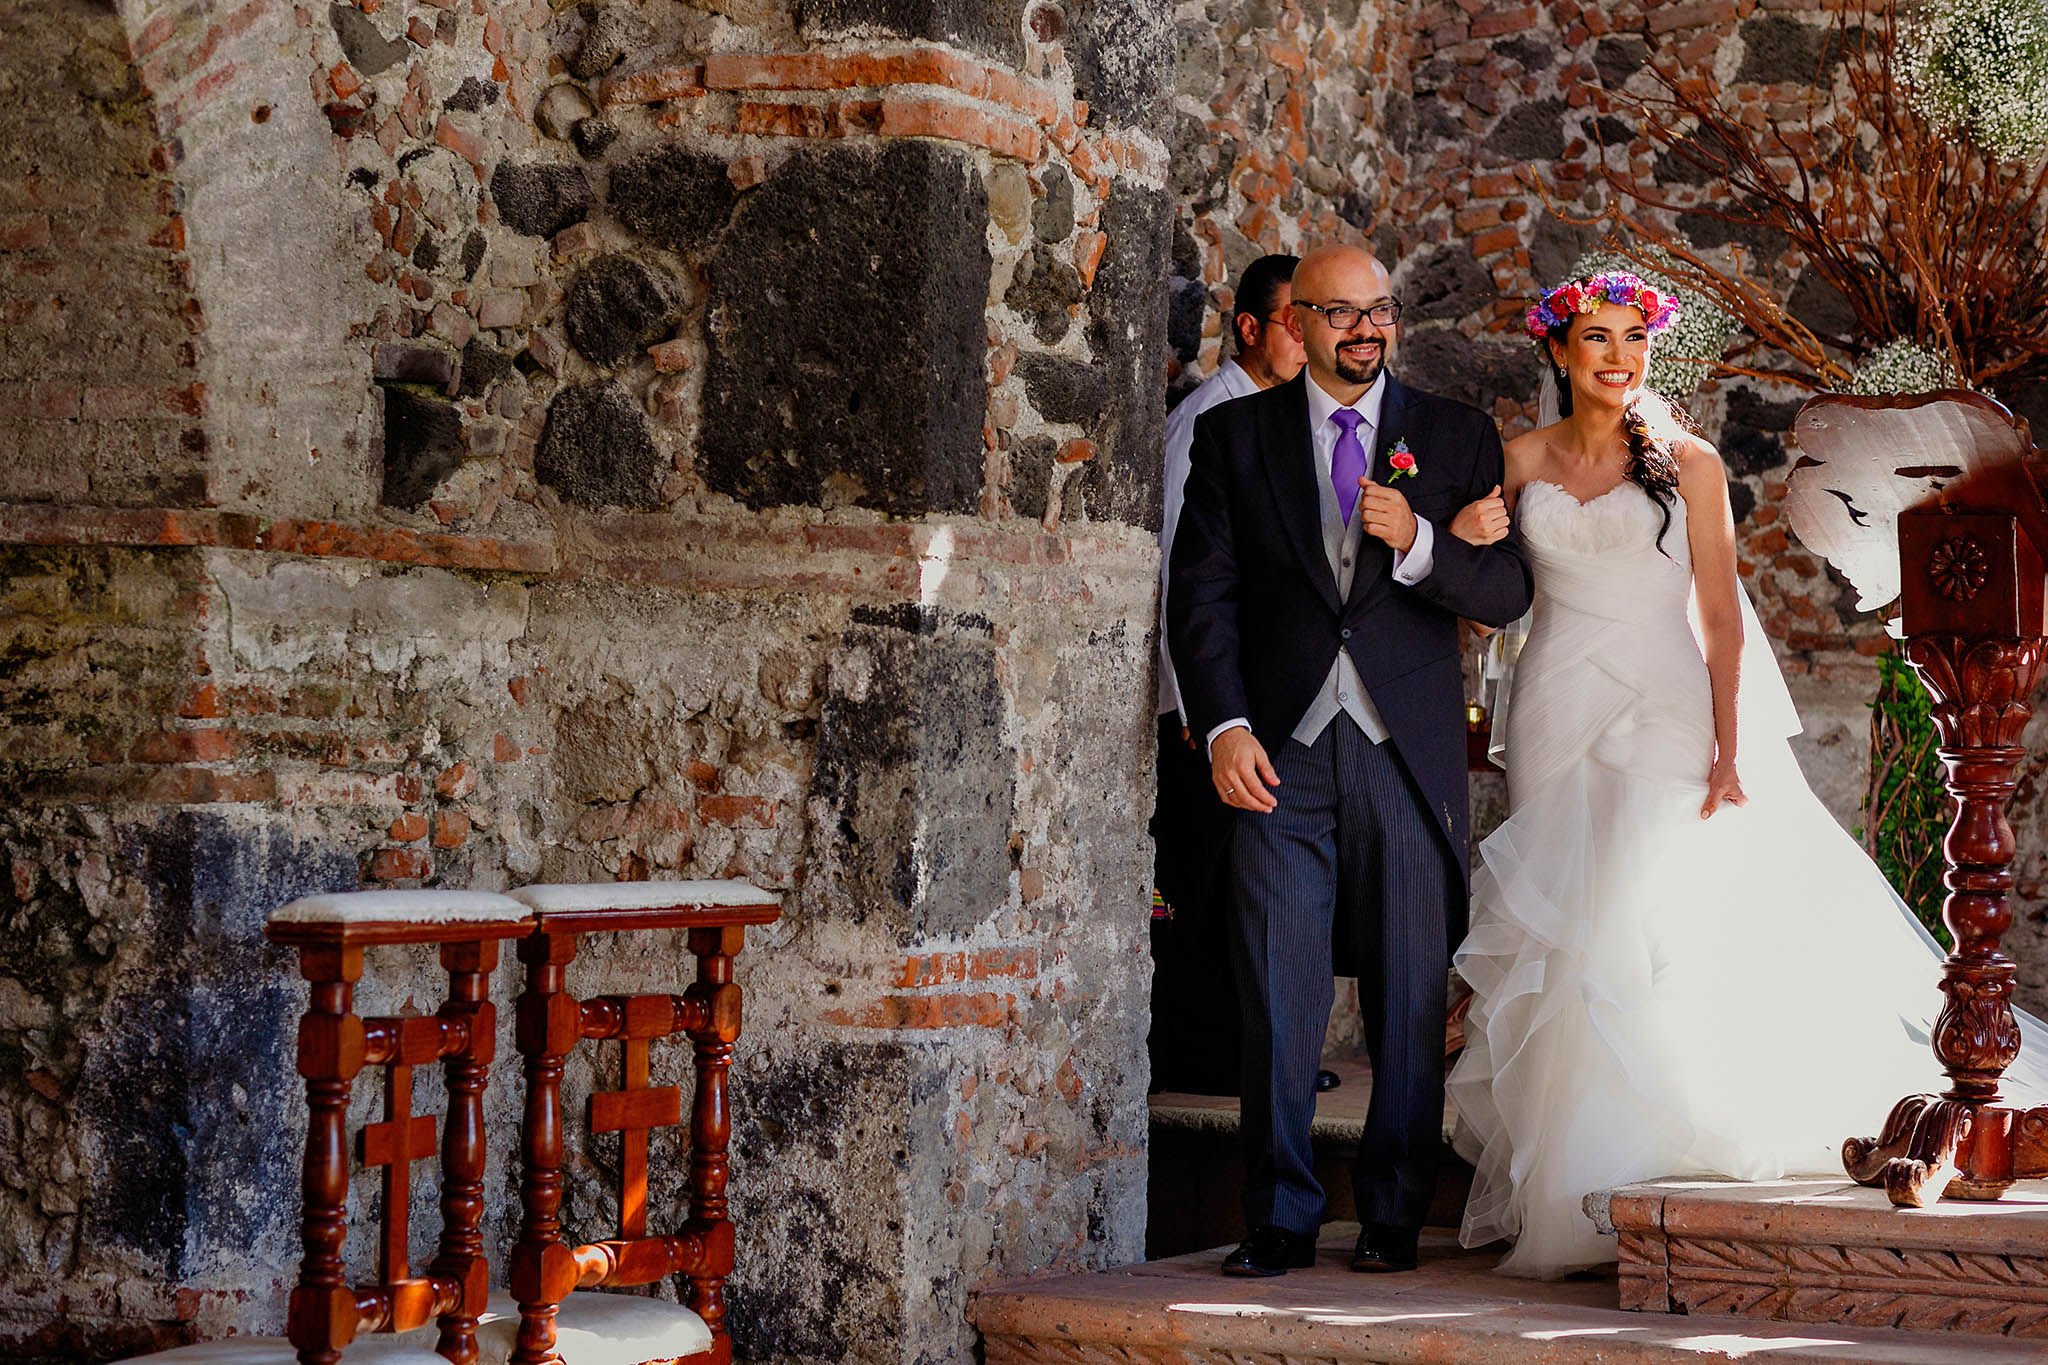 Wedding-photographer-cuernavaca67